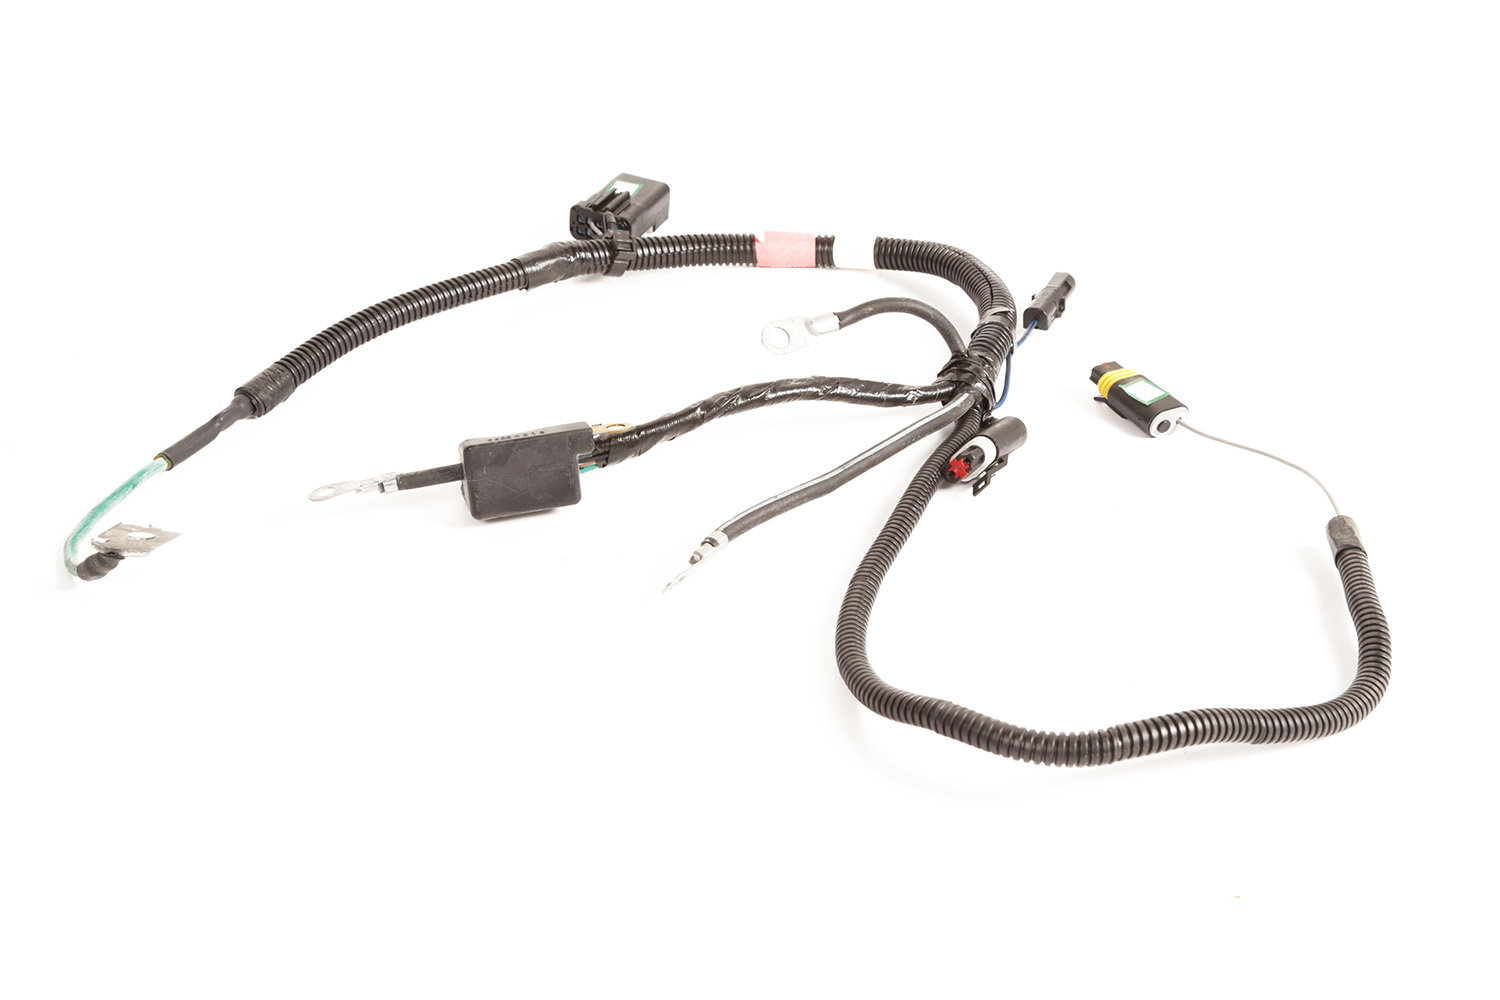 OMIX-ADA 56009610 Wiring Harness Assembly for 94-96 Jeep